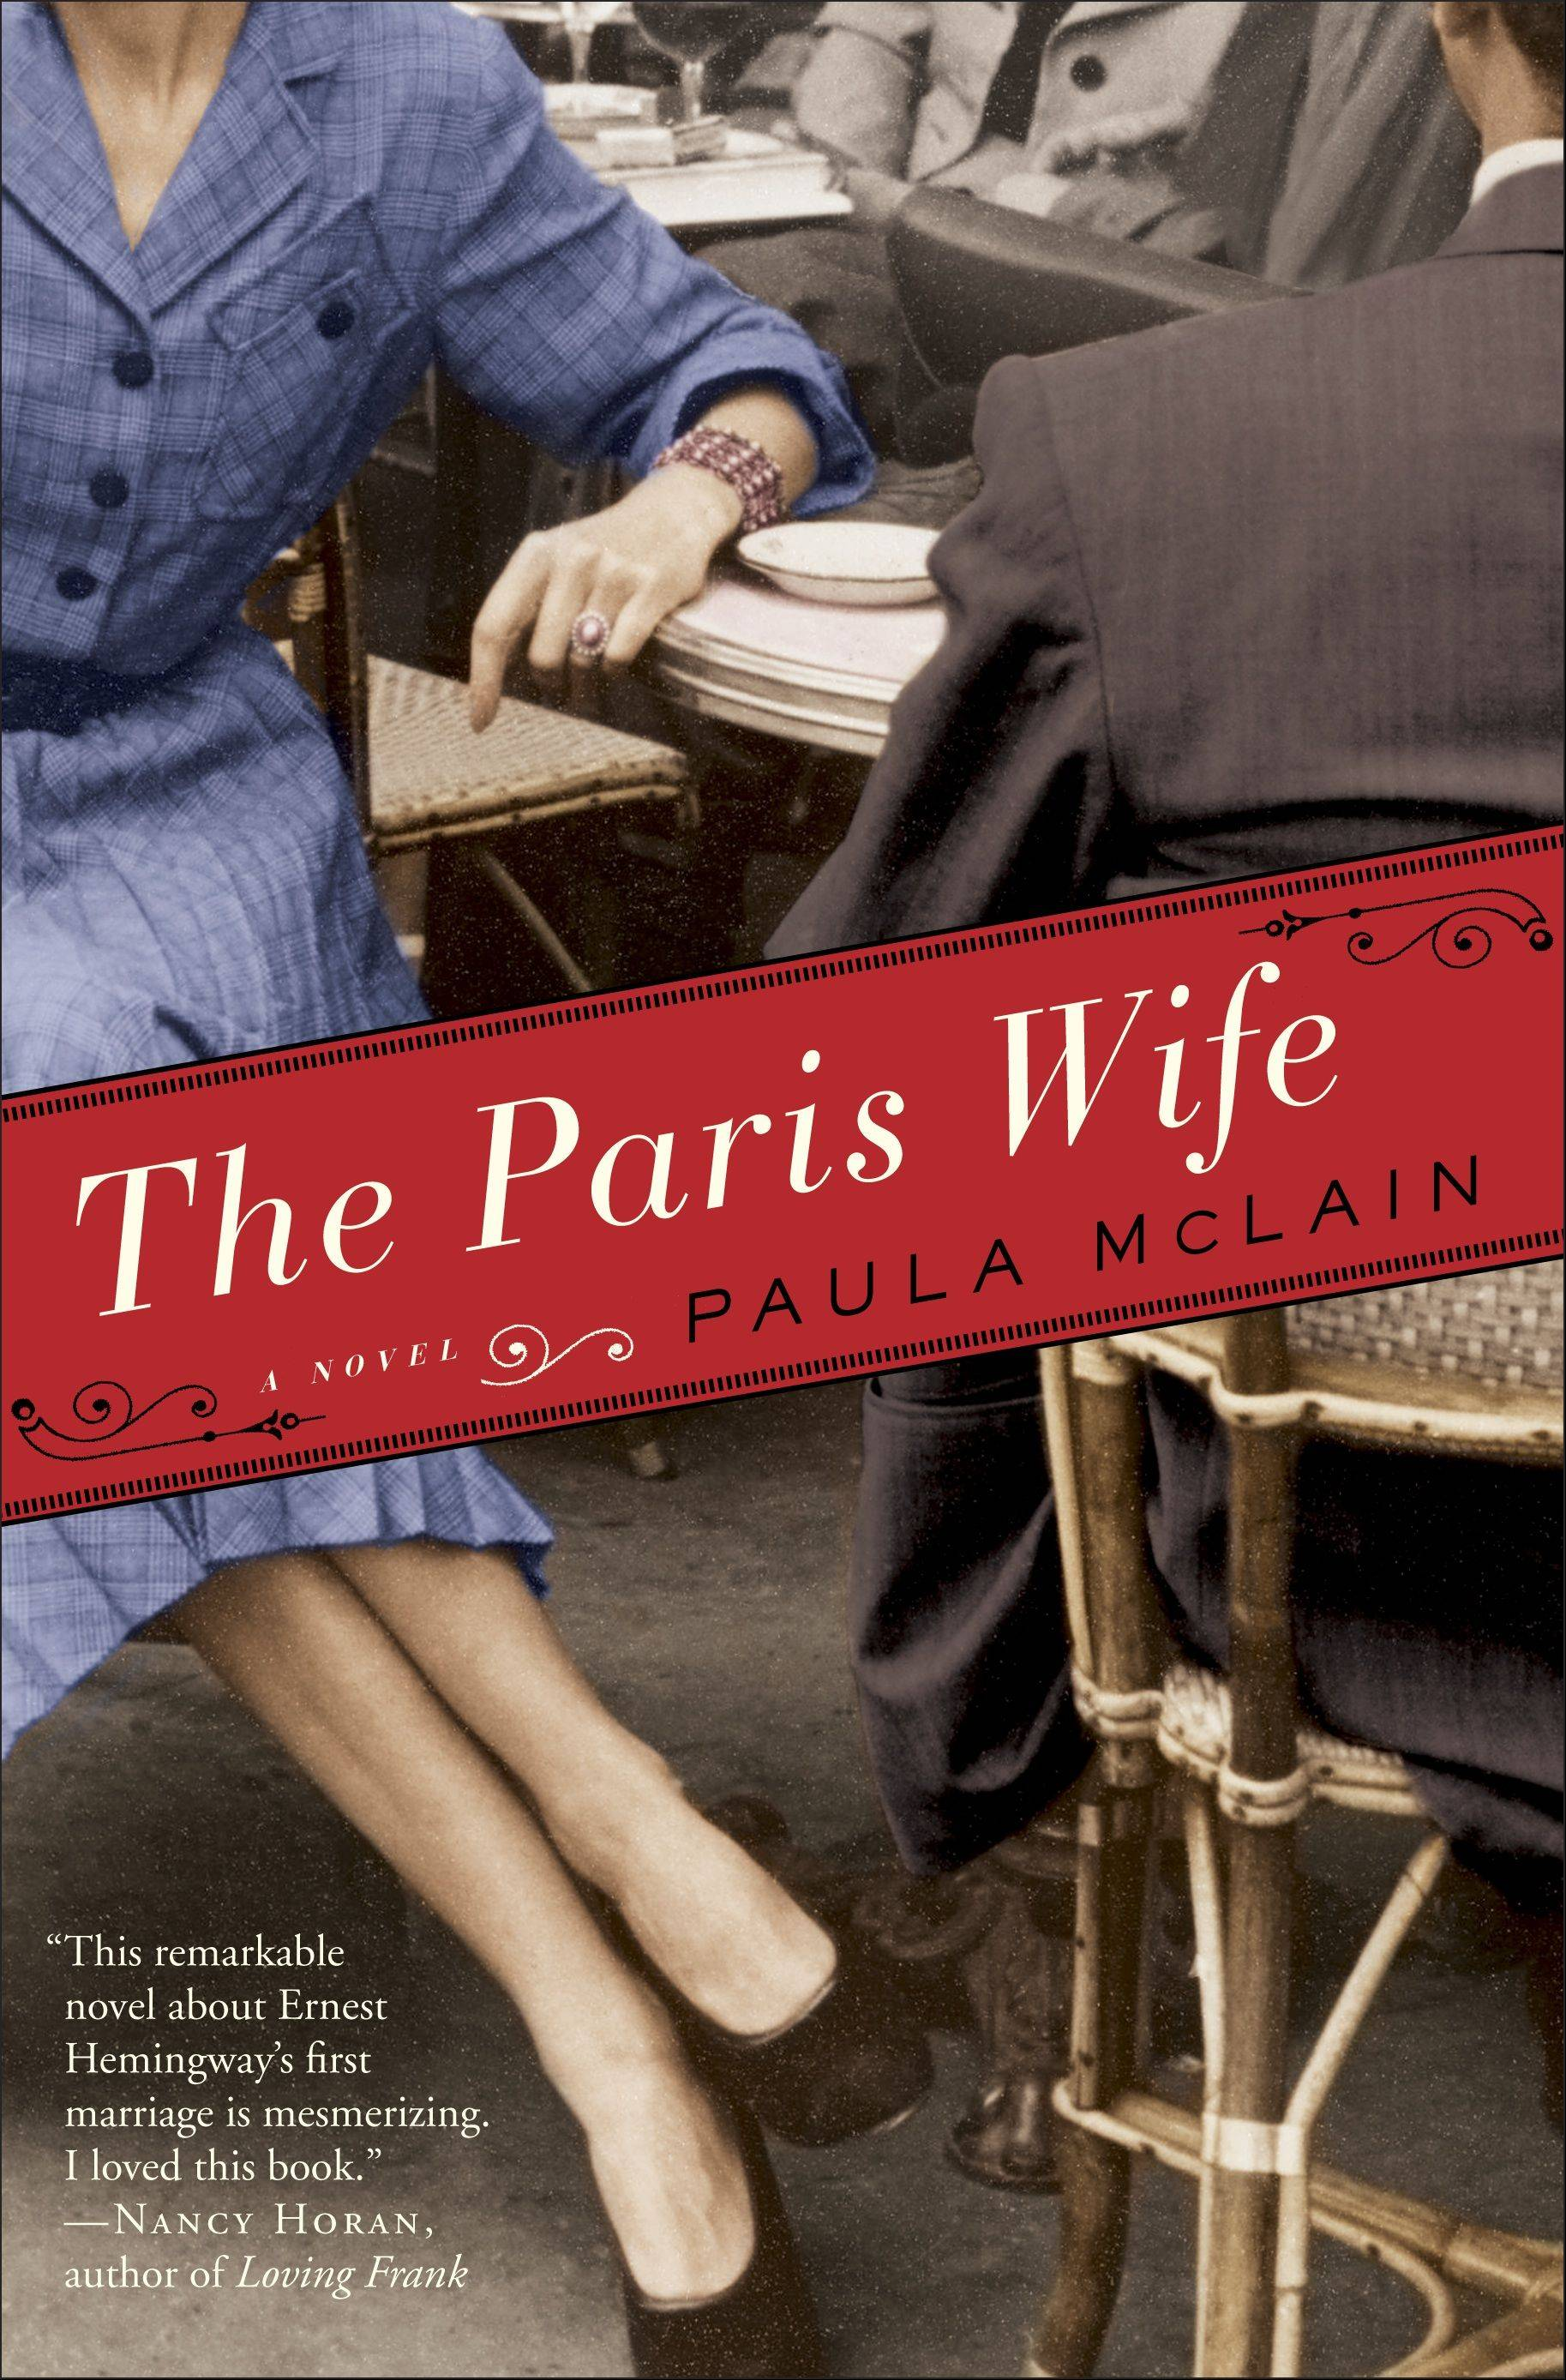 """The Paris Wife"" by Paula McLain introduces readers to a young Ernest Hemingway and his first wife, Hadley. It is this year's Big Read selection at 10 suburban libraries. McLain will come to Willowbrook in May to discuss the work with her fans."